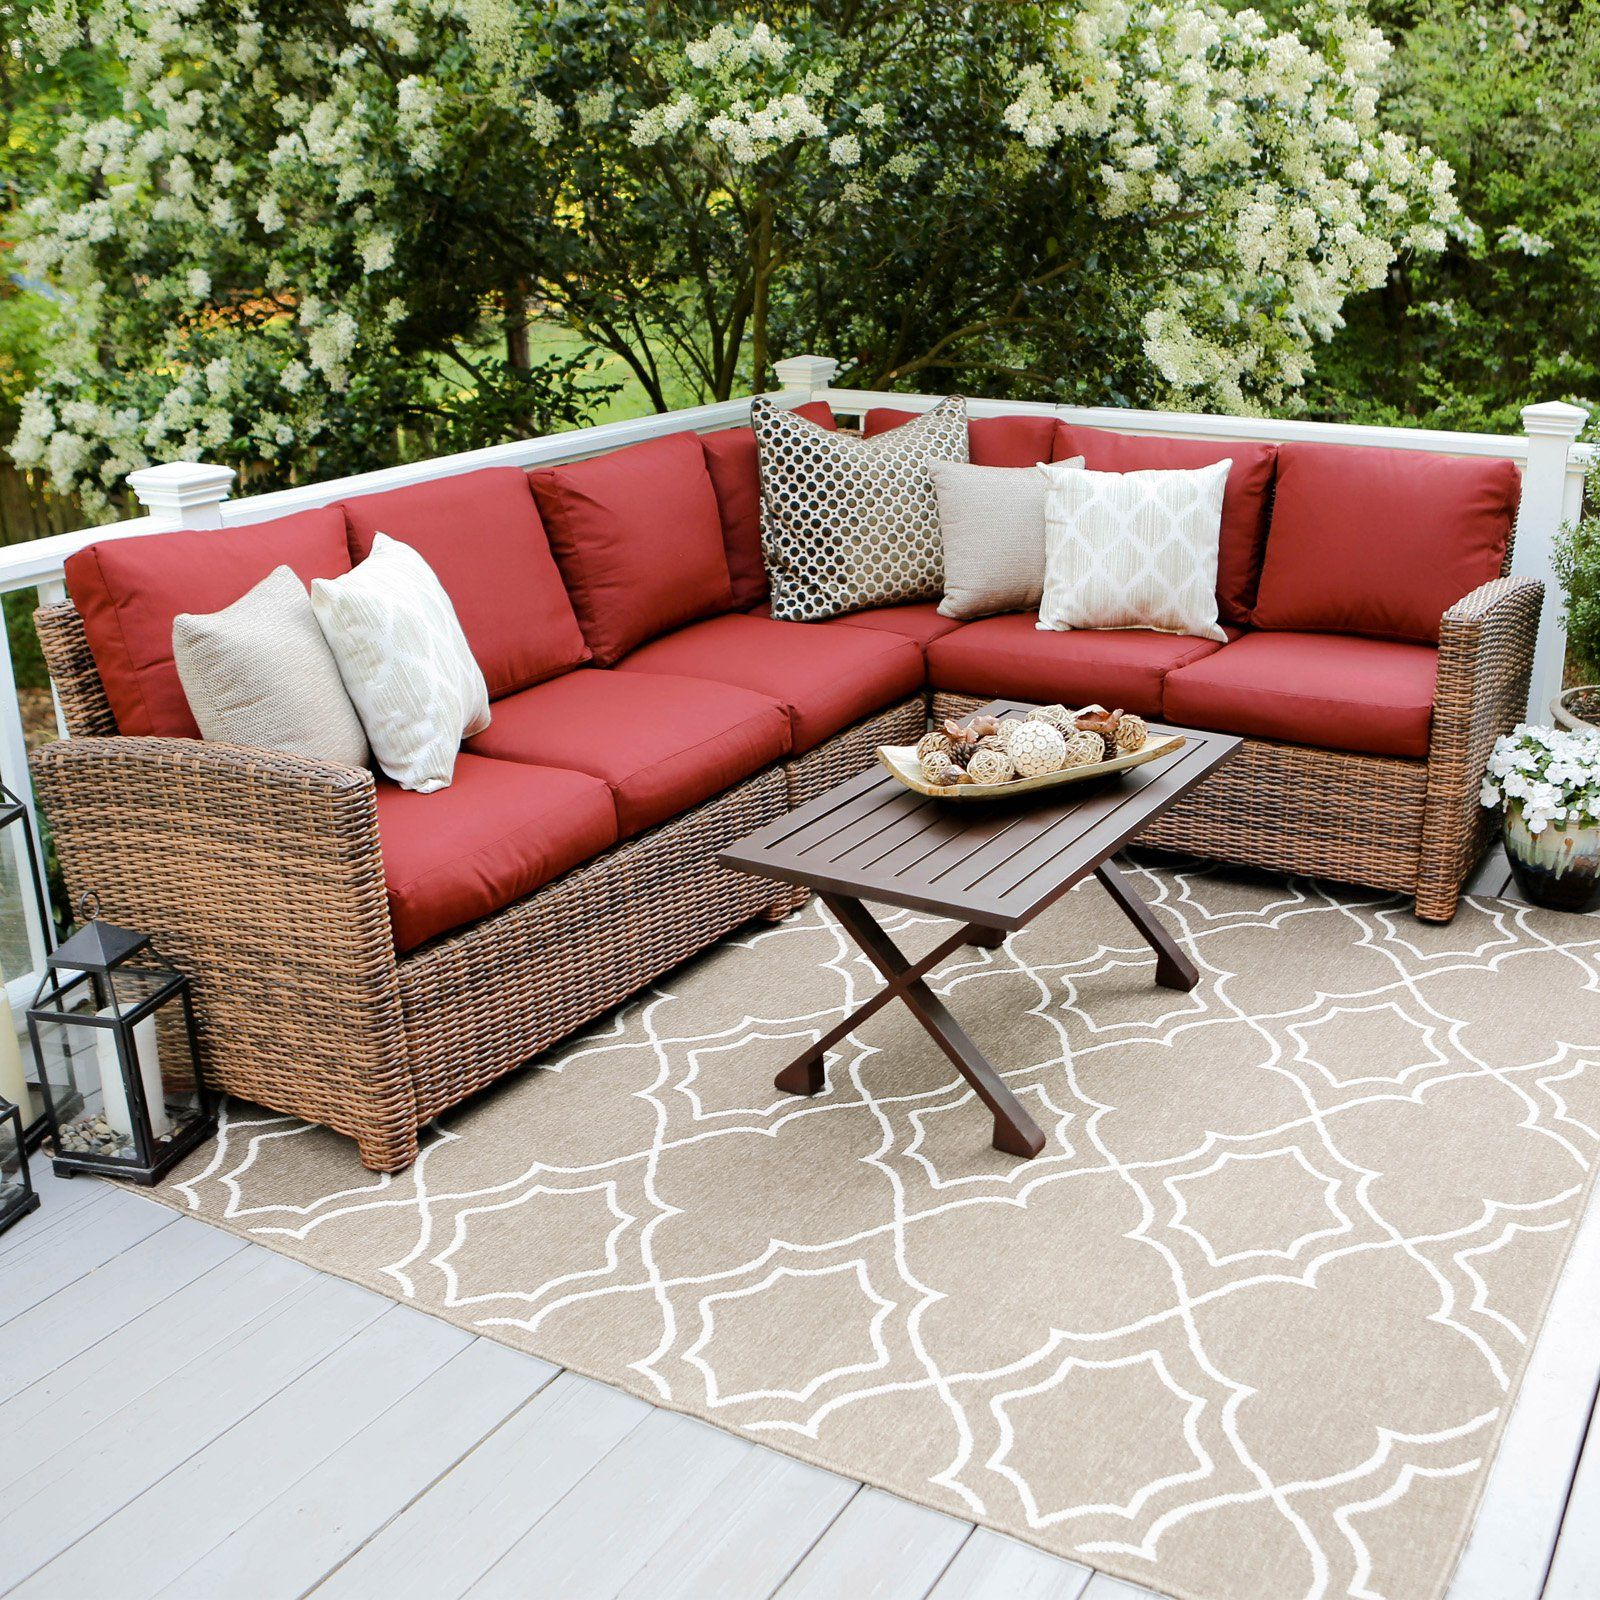 Outdoor Leisure Made Dalton Wicker 5 Piece Corner Sectional Patio Conversation Set Red Sectional Patio Furniture Patio Furniture Sets Furniture Sets